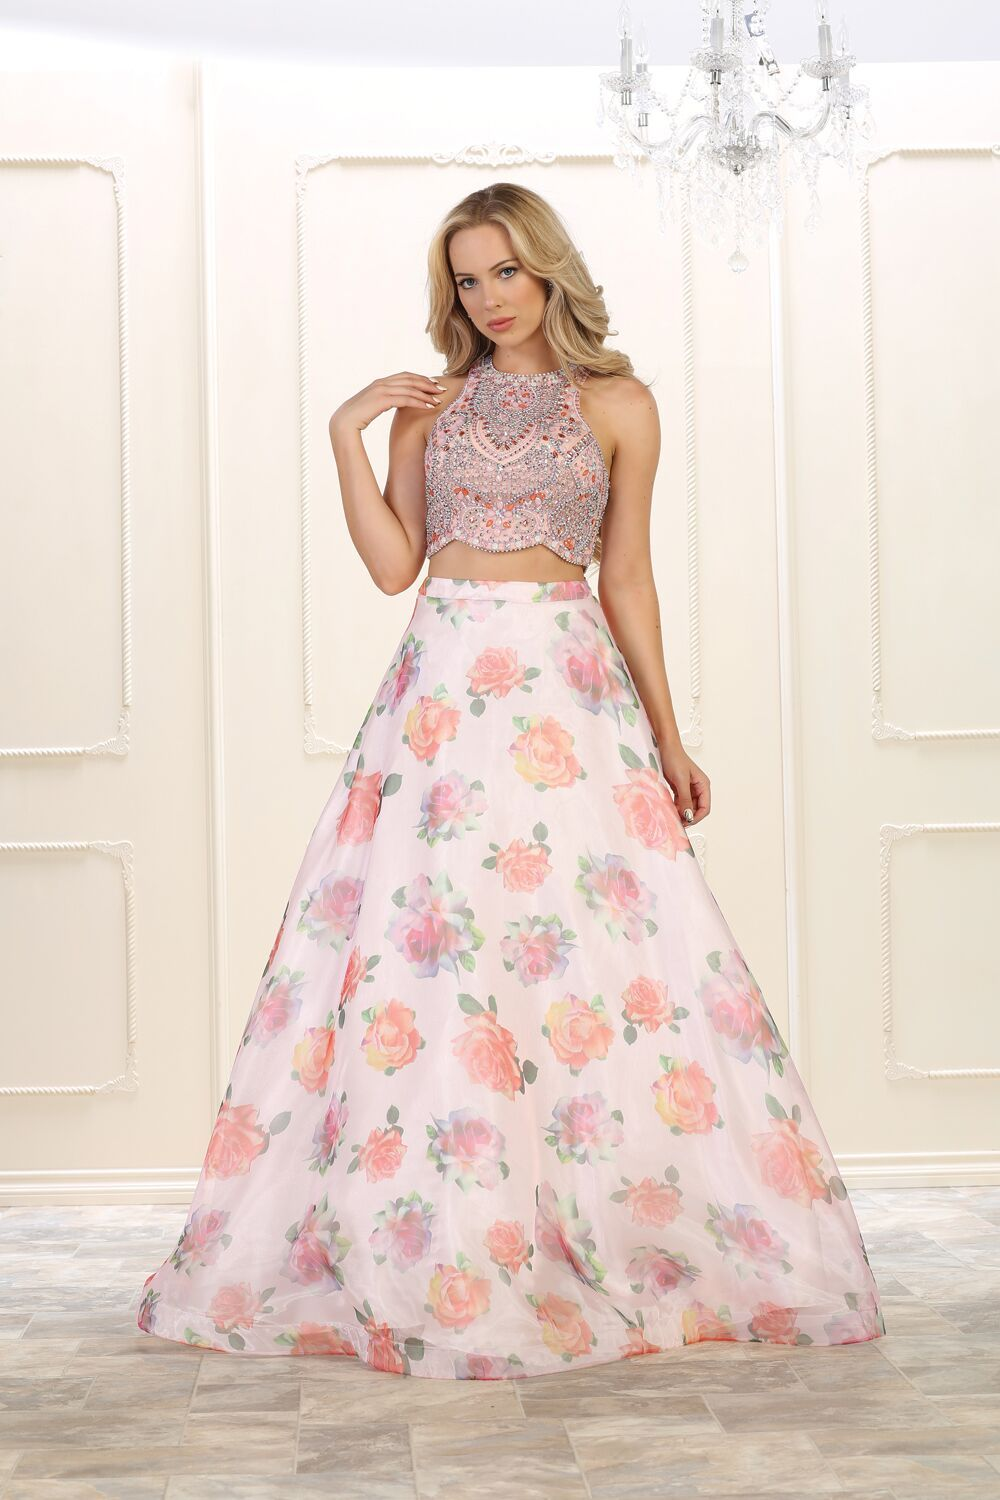 6096b7aeecd0 This stunning two piece set floor length dress features halter with floral  print skirt. Perfect for for prom, homecoming, evening party or any special  ...